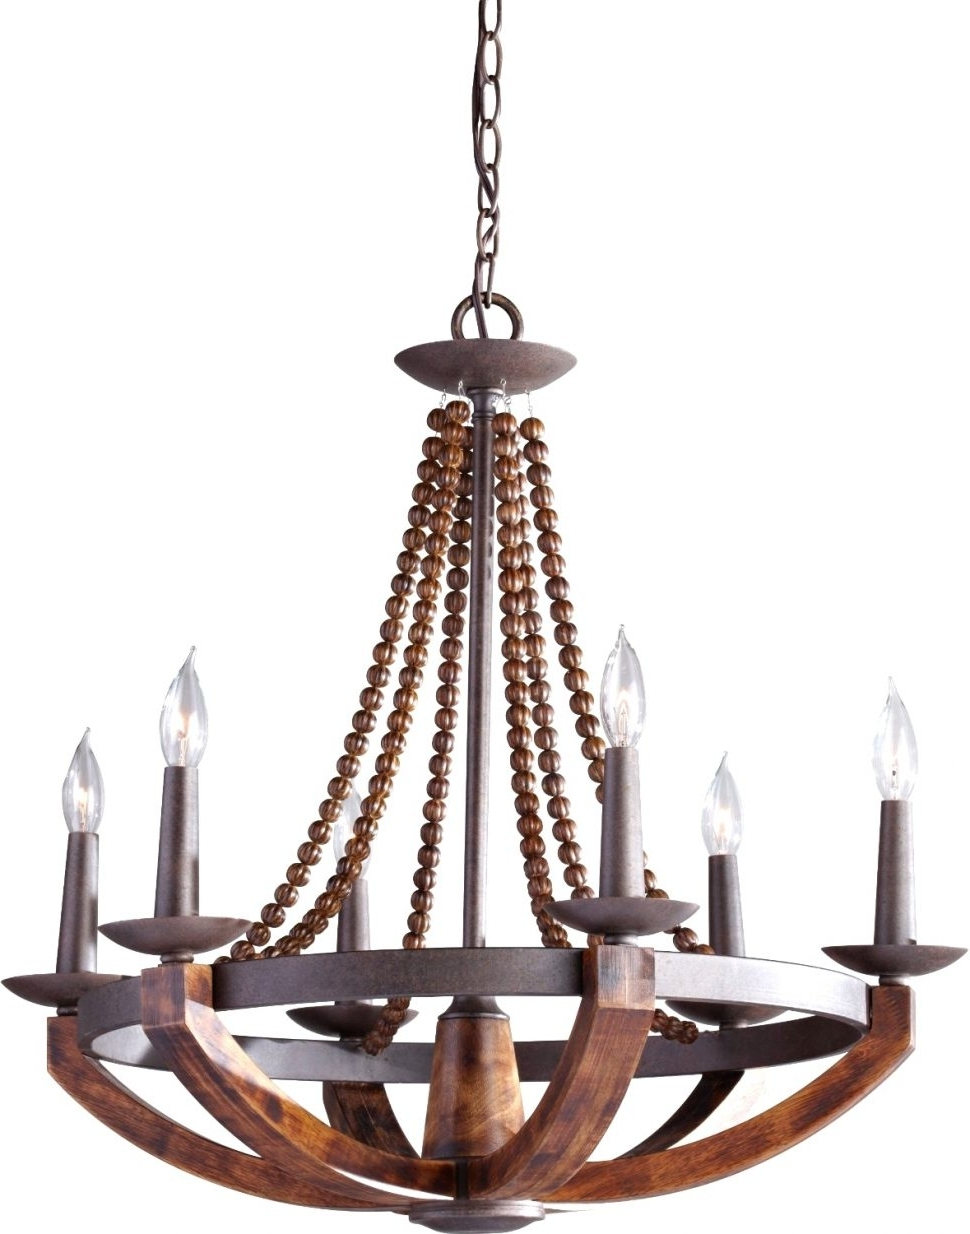 Light : Large Rustic Chandelier Lighting With Best Wood And Metal With Regard To Most Recently Released Metal Chandeliers (View 5 of 20)